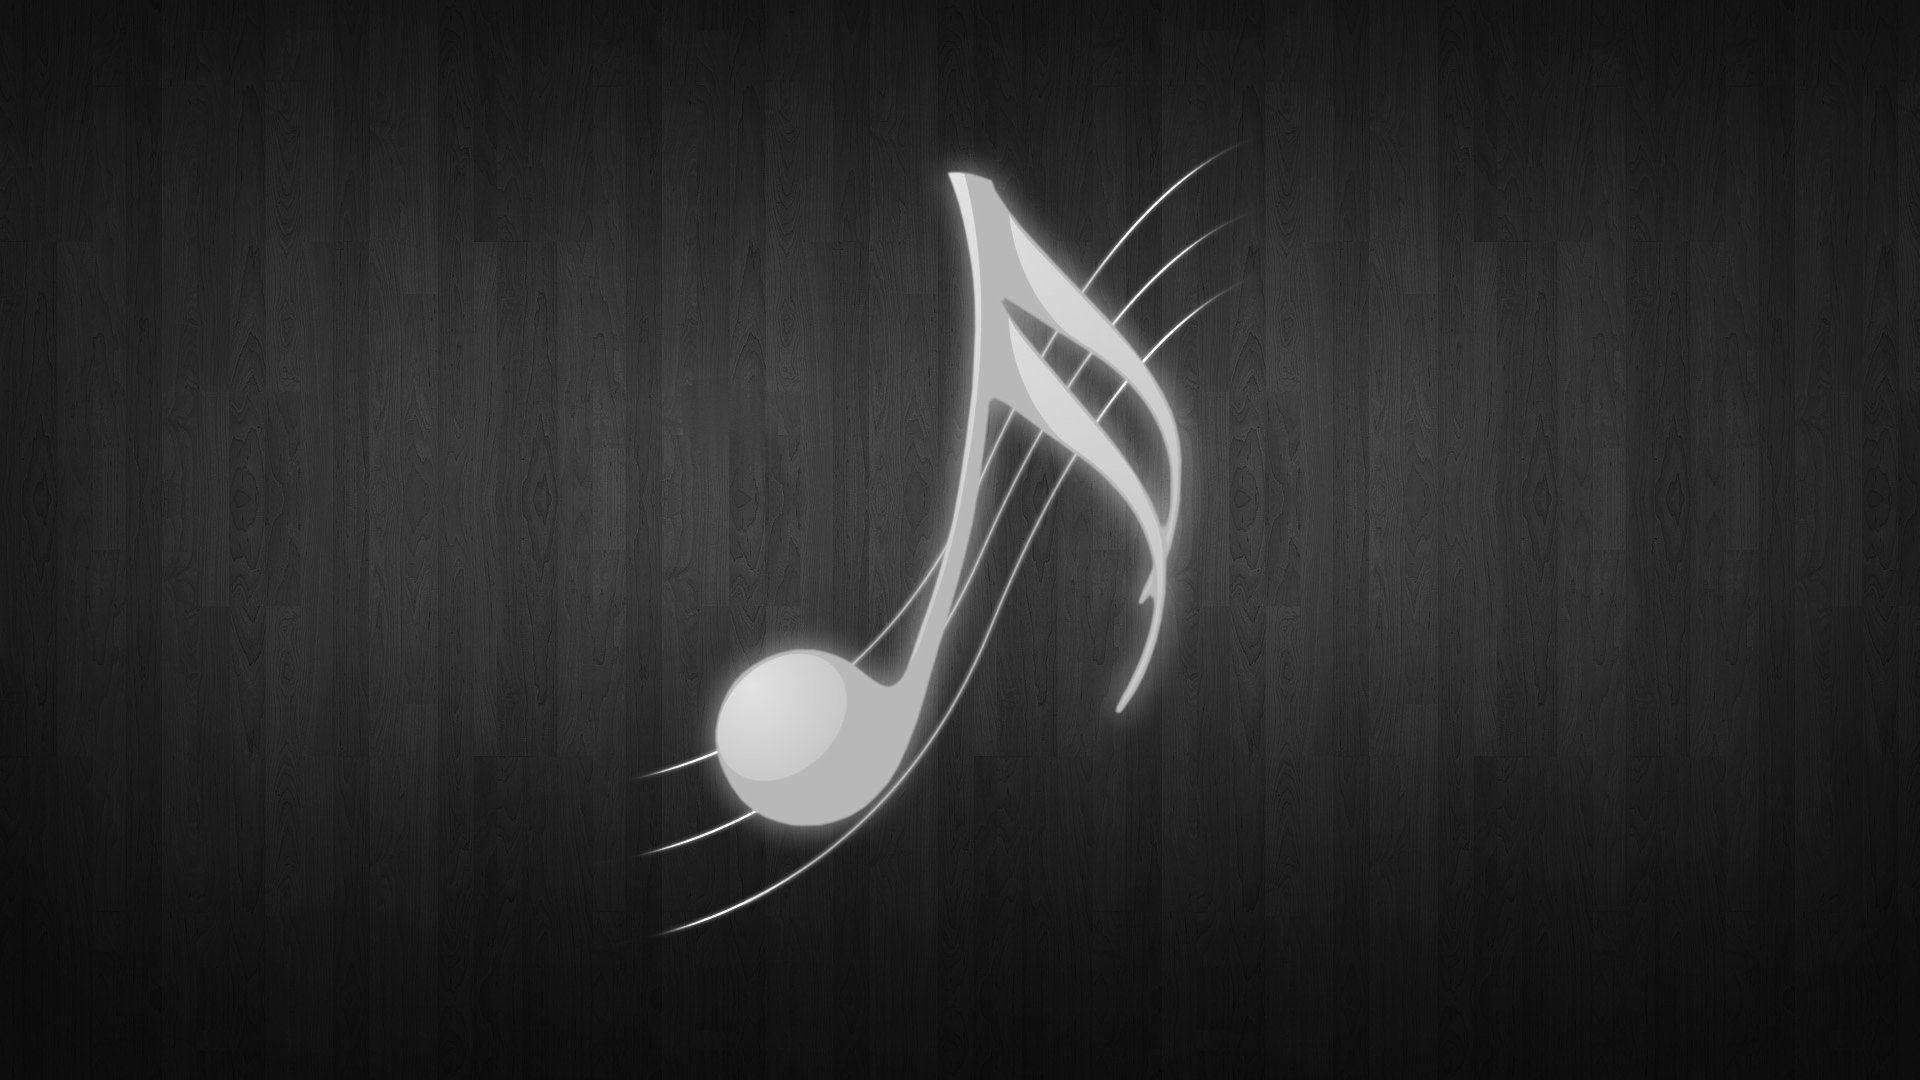 Wallpapers For Music Notes Wallpaper Iphone